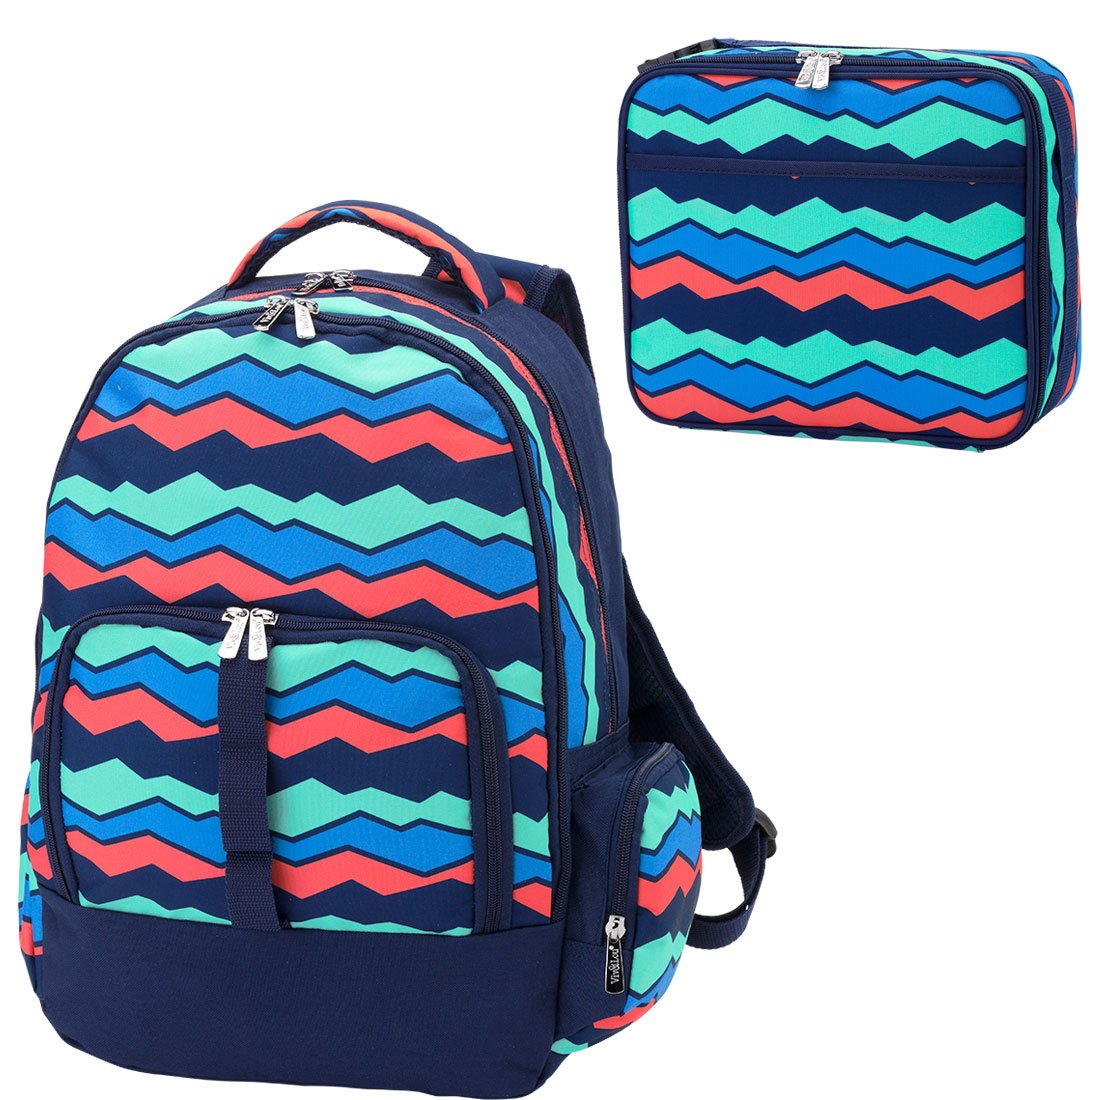 2c2b43045 Overlook 2 Piece Reinforced Reinforced Reinforced Design Water Resistant  Backpack and Lunch Bag Set 3d41c2